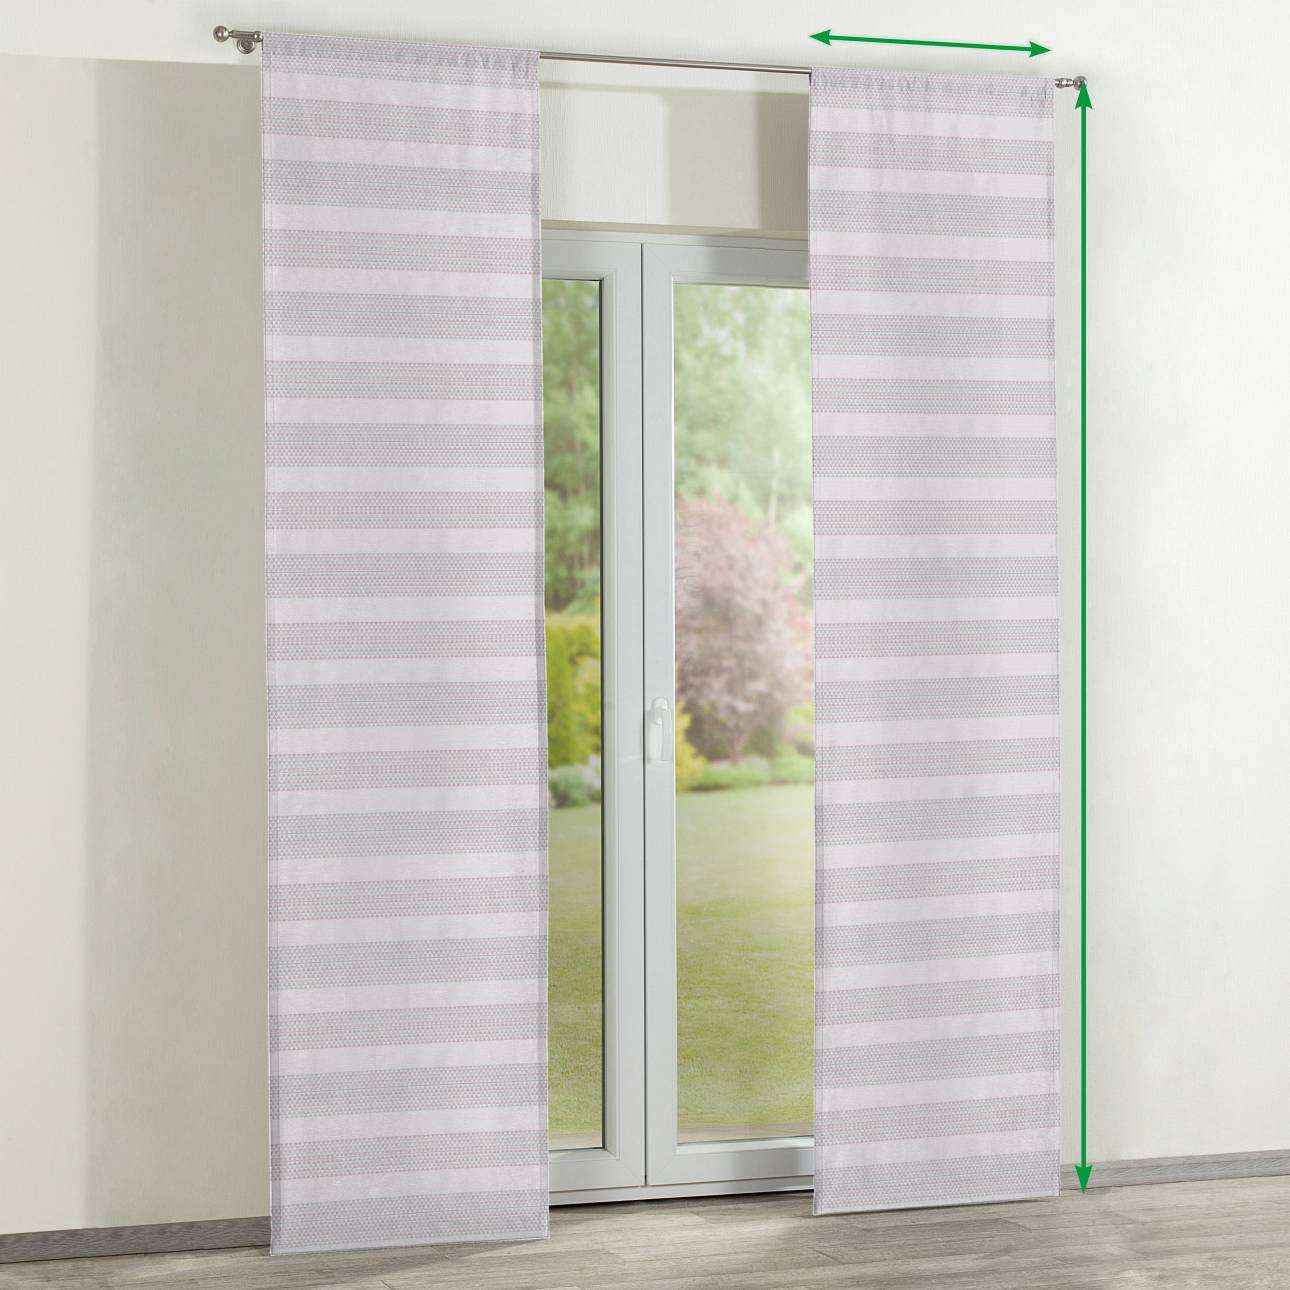 Slot panel curtains – Set of 2 in collection Rustica, fabric: 140-29